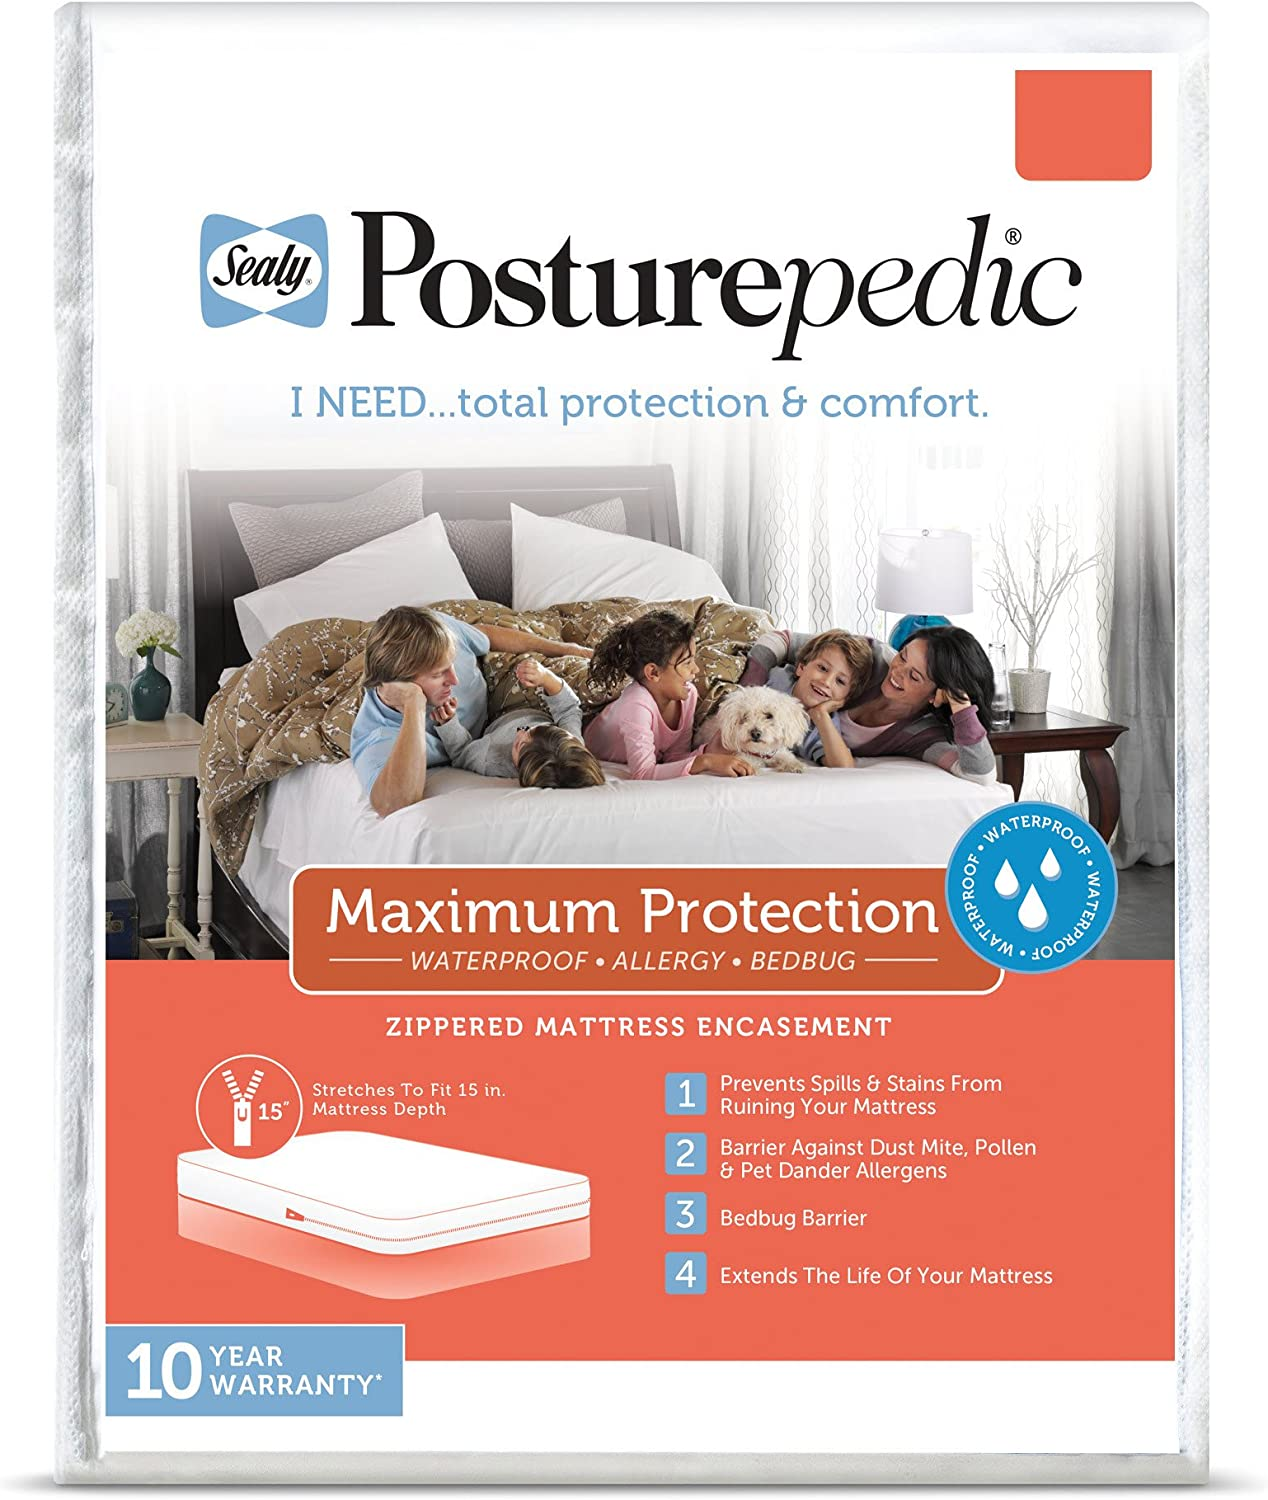 Sealy Posturepedic Maximum Protection Waterproof, Bedbug Zippered Mattress Protector - Prevent Collection of Dust Mites & Other Allergens - Vinyl Free & Hypoallergenic - 10 Year Warranty, Twin Sized